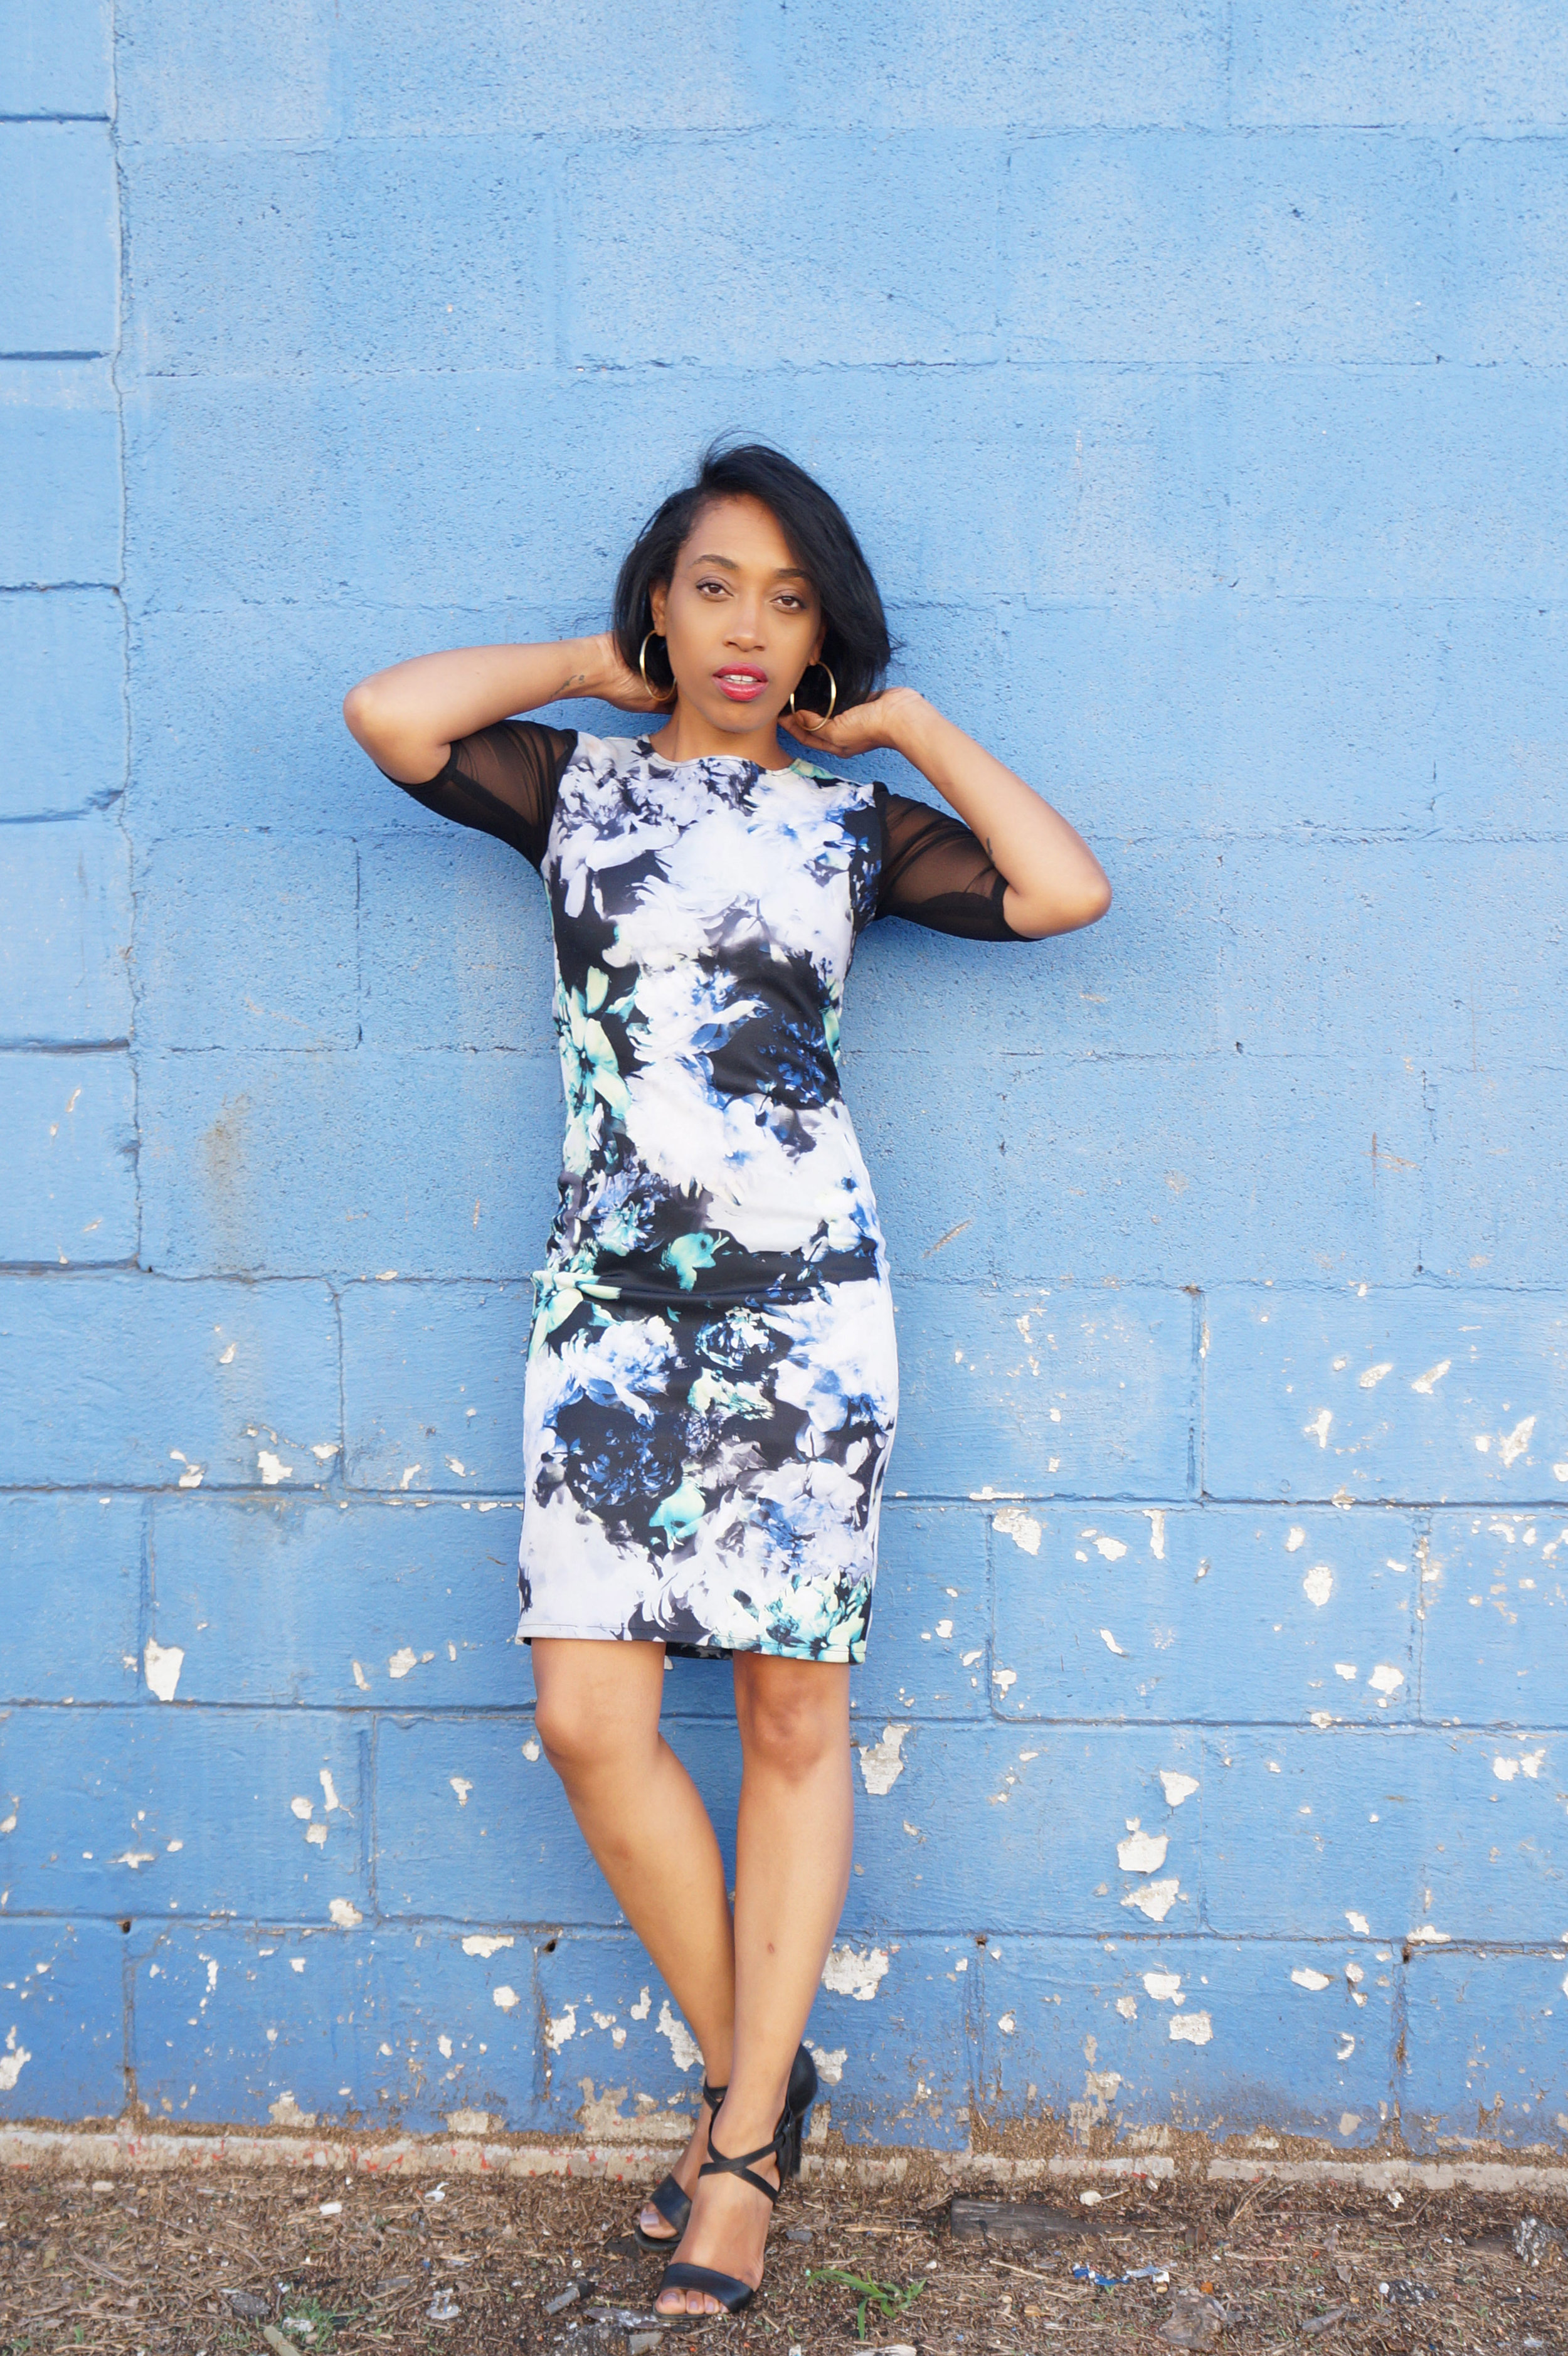 Andrea Fenise Memphis Fashion Blogger shares black and blue mesh floral bodycon dress